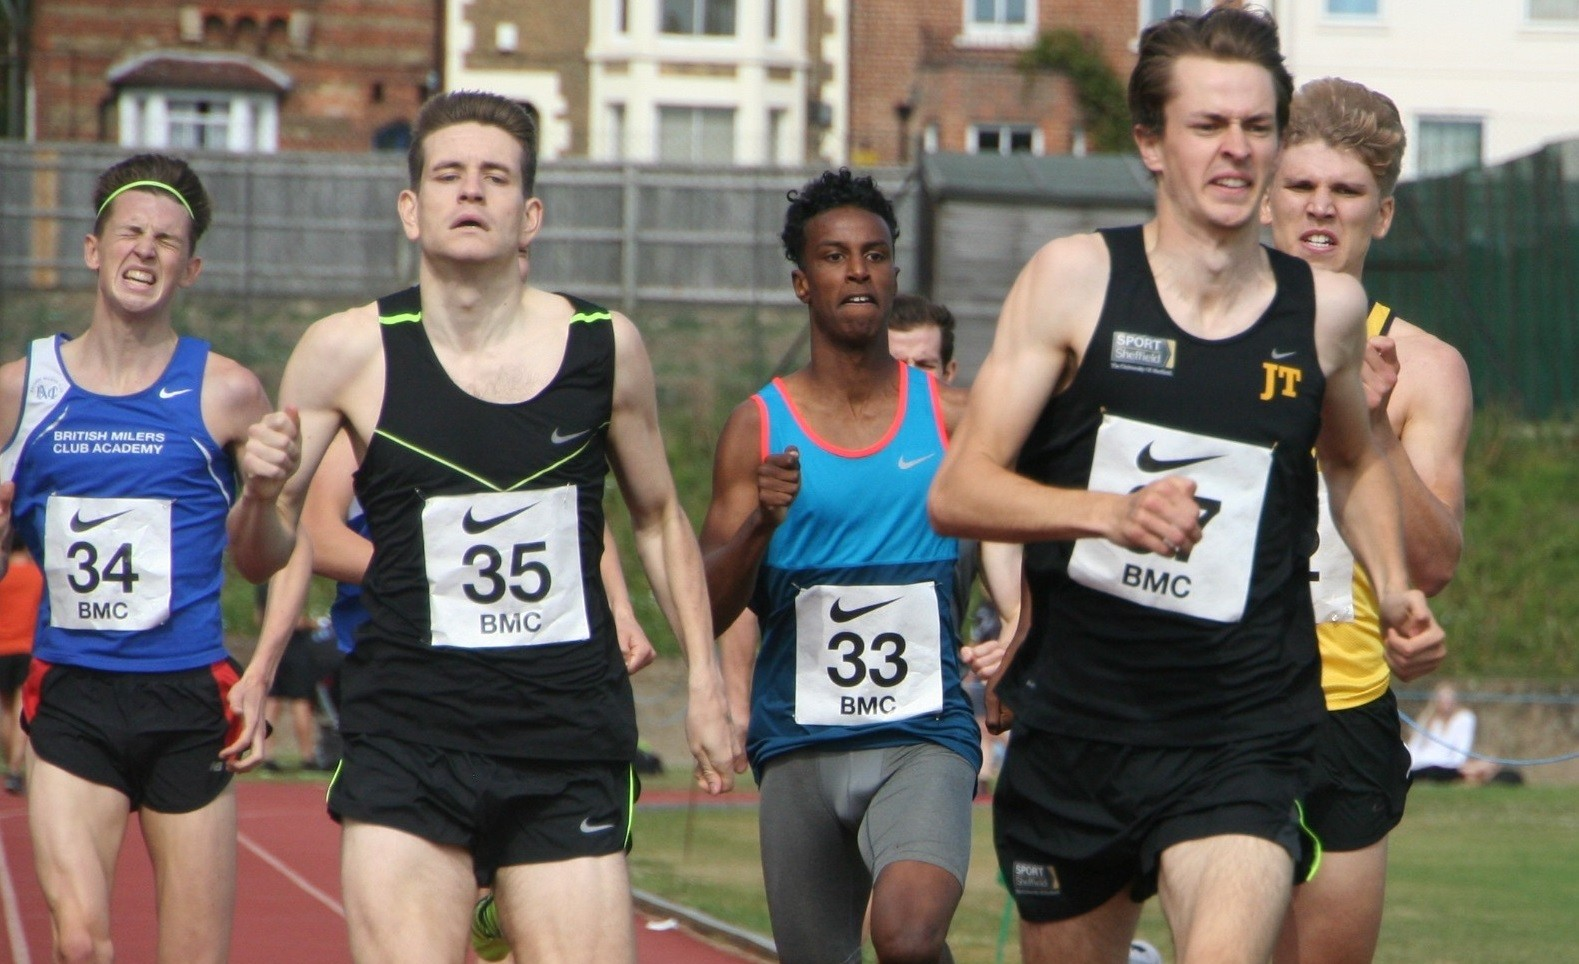 British Milers Club is launching the Bannister Mile Series